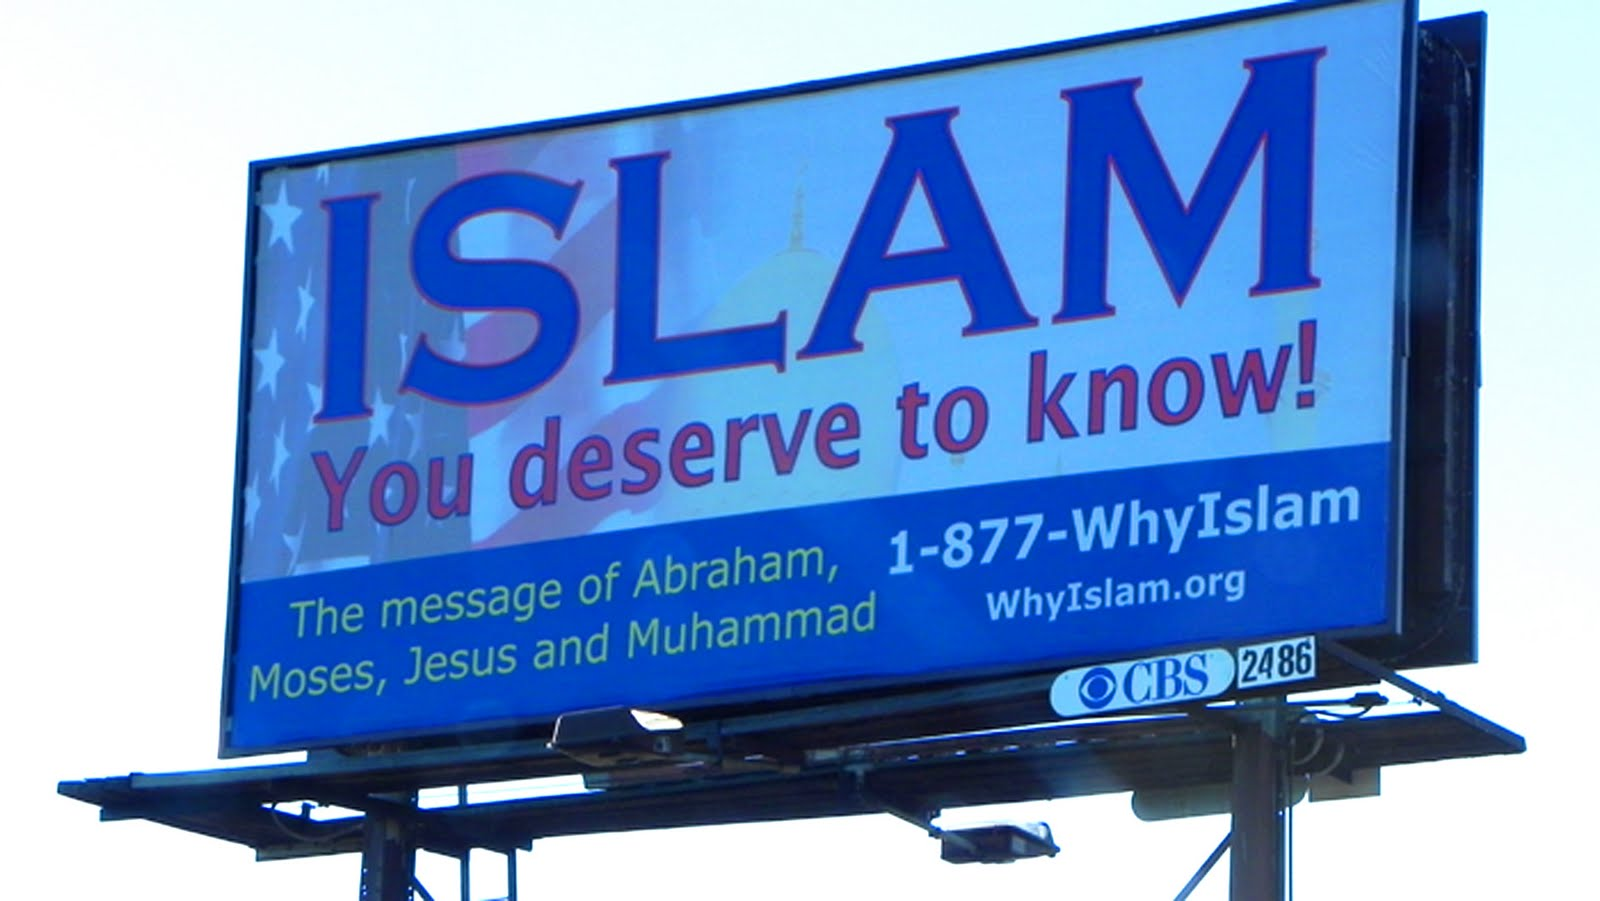 Islam You Deserve To Know